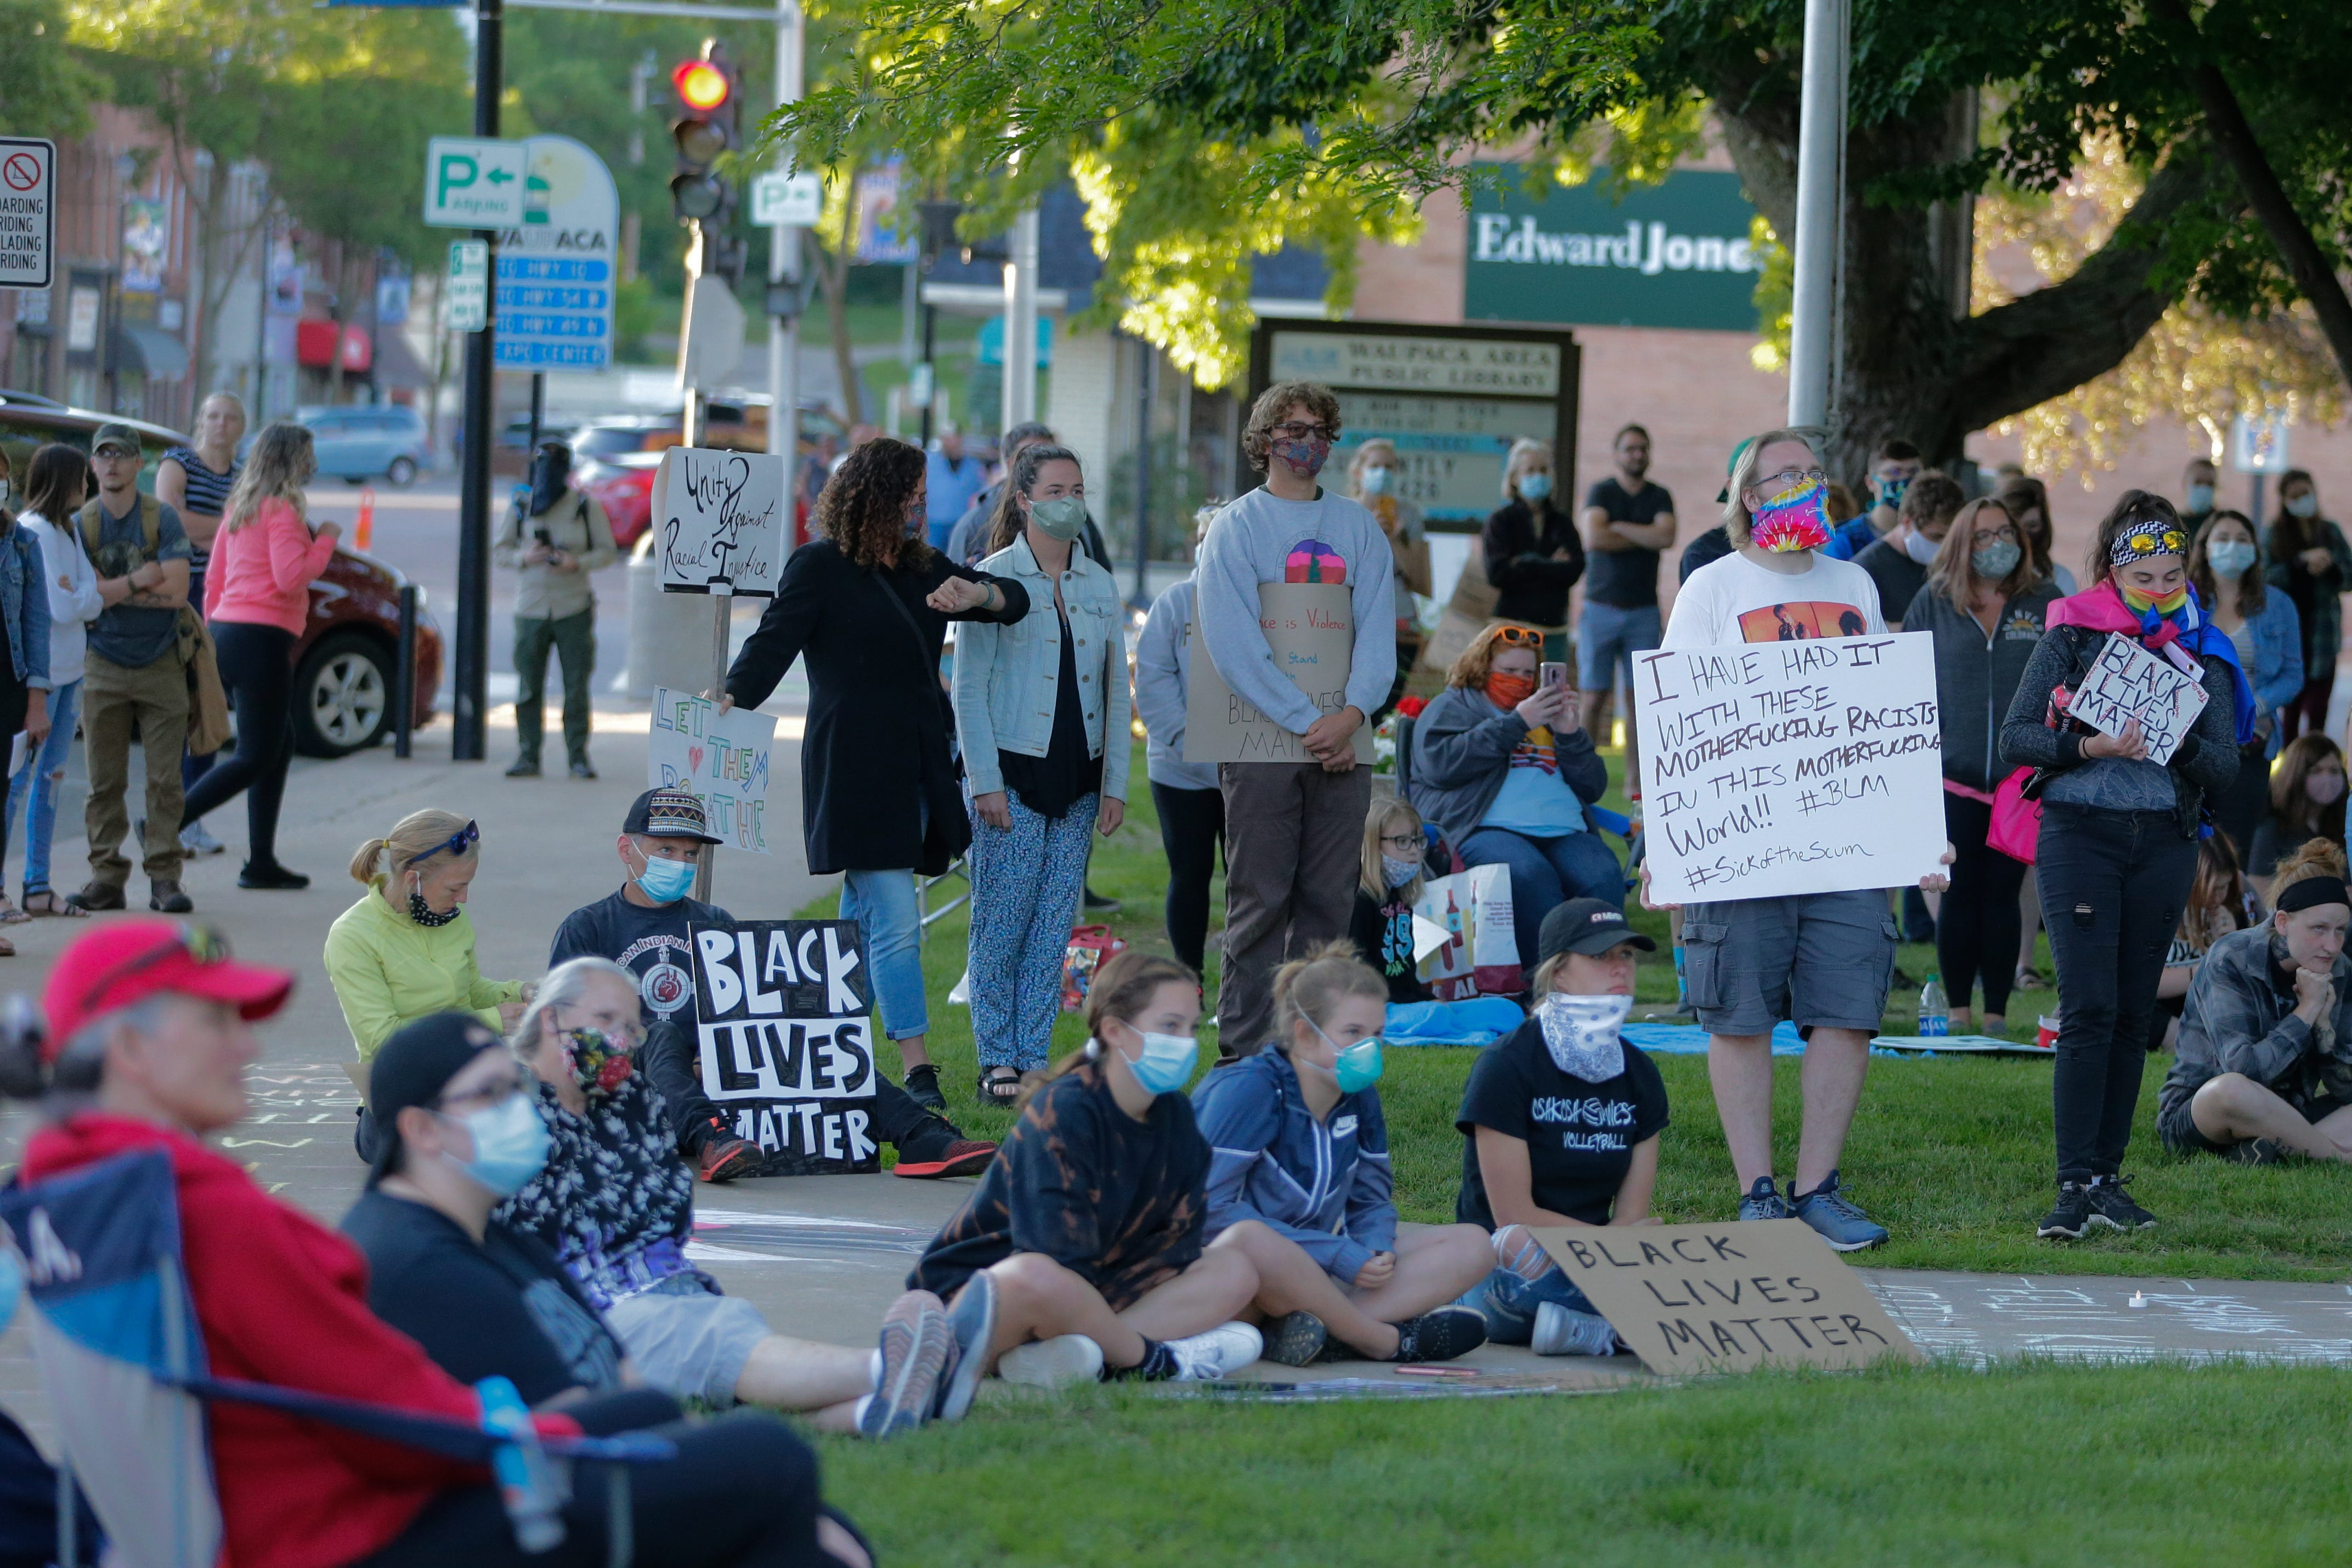 People participate in a Black Lives Matter protest Saturday, June 13, 2020, in Waupaca, Wis. Alex Martin/USA TODAY NETWORK-Wisconsin